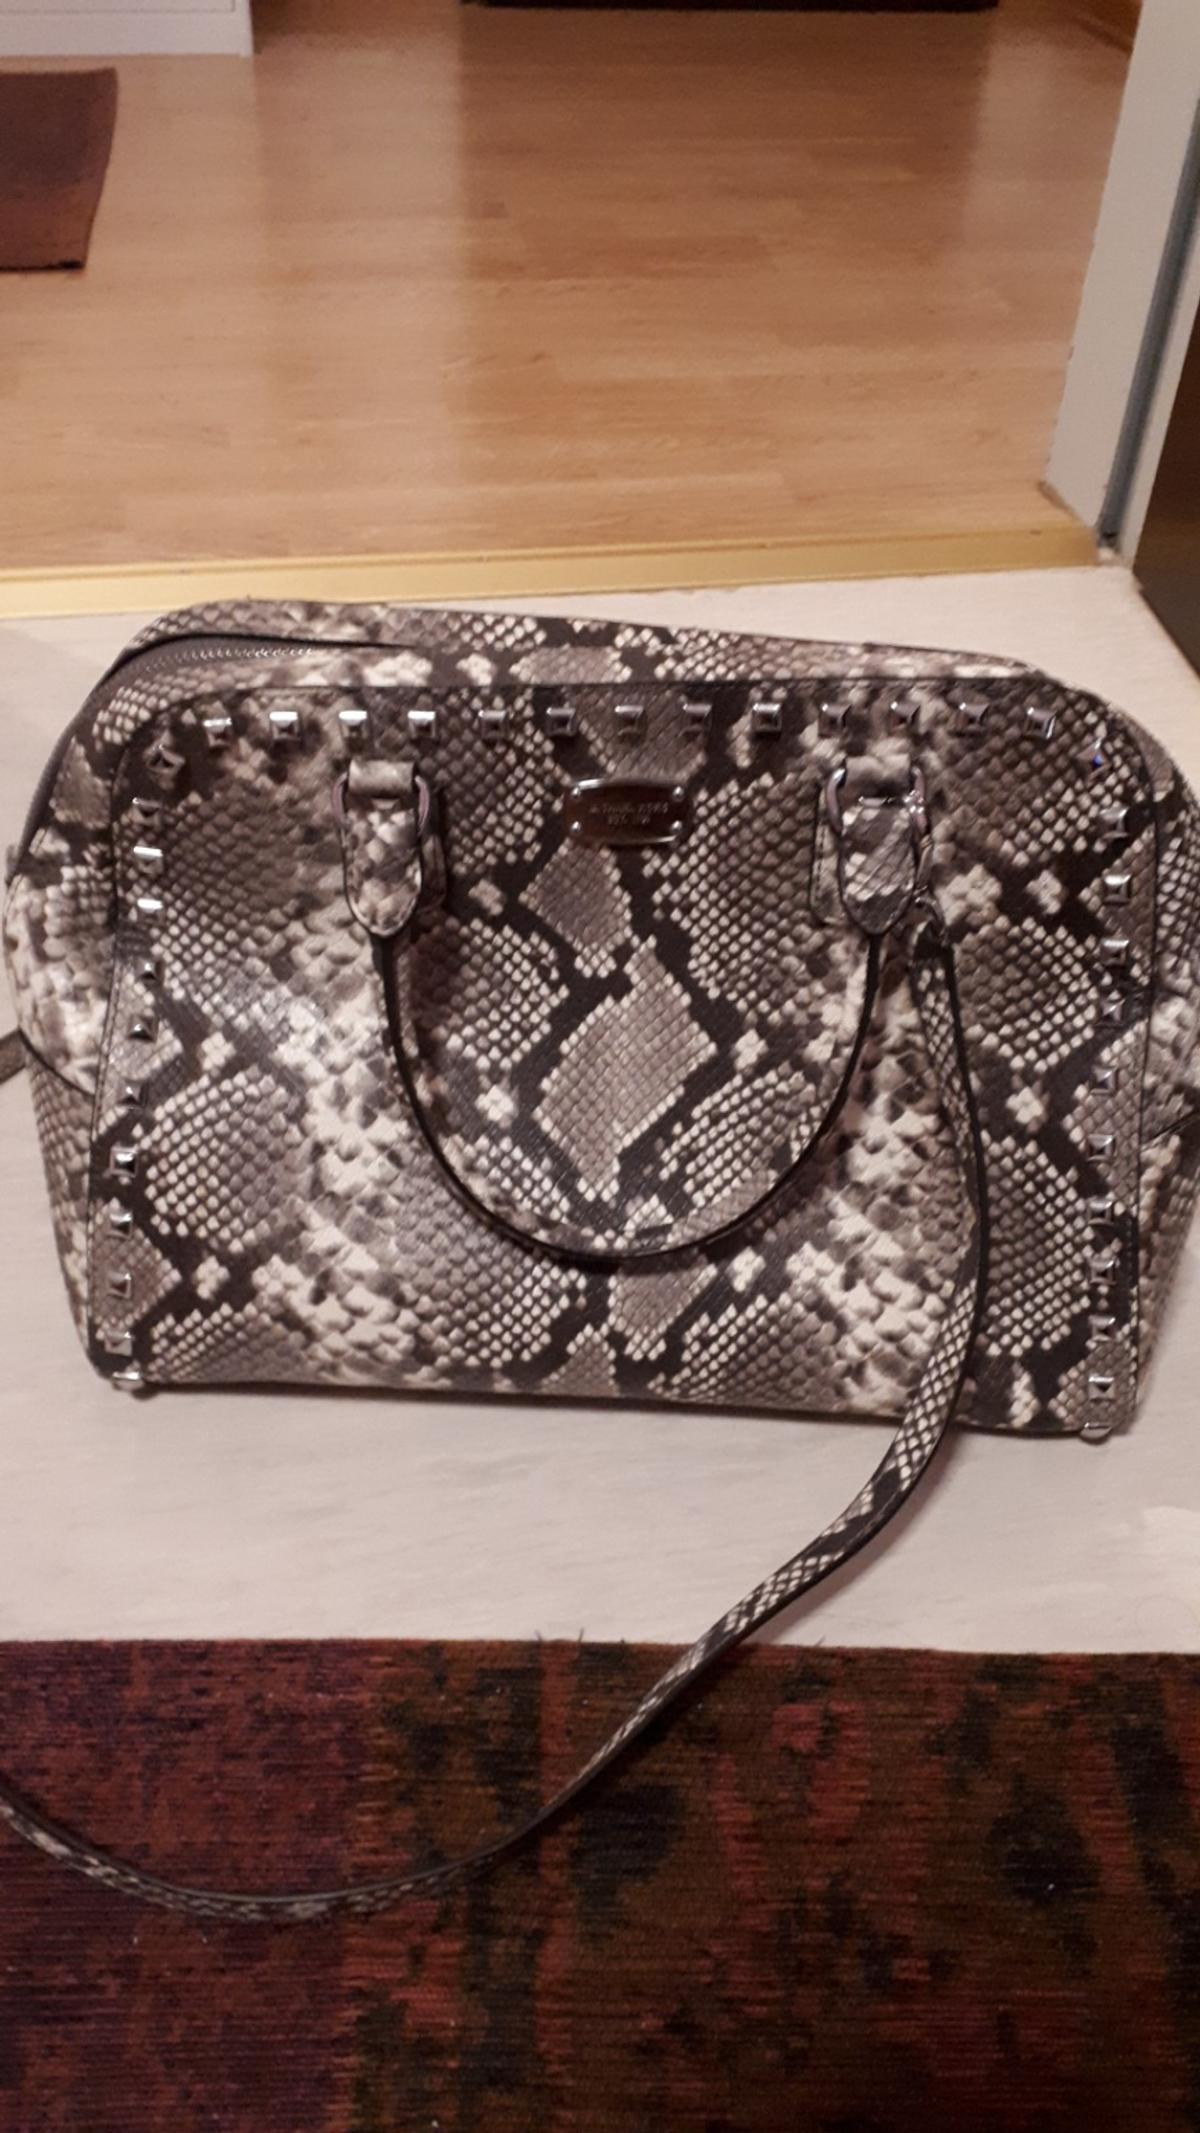 Michael kors in 85748 Garching bei München for €130.00 for